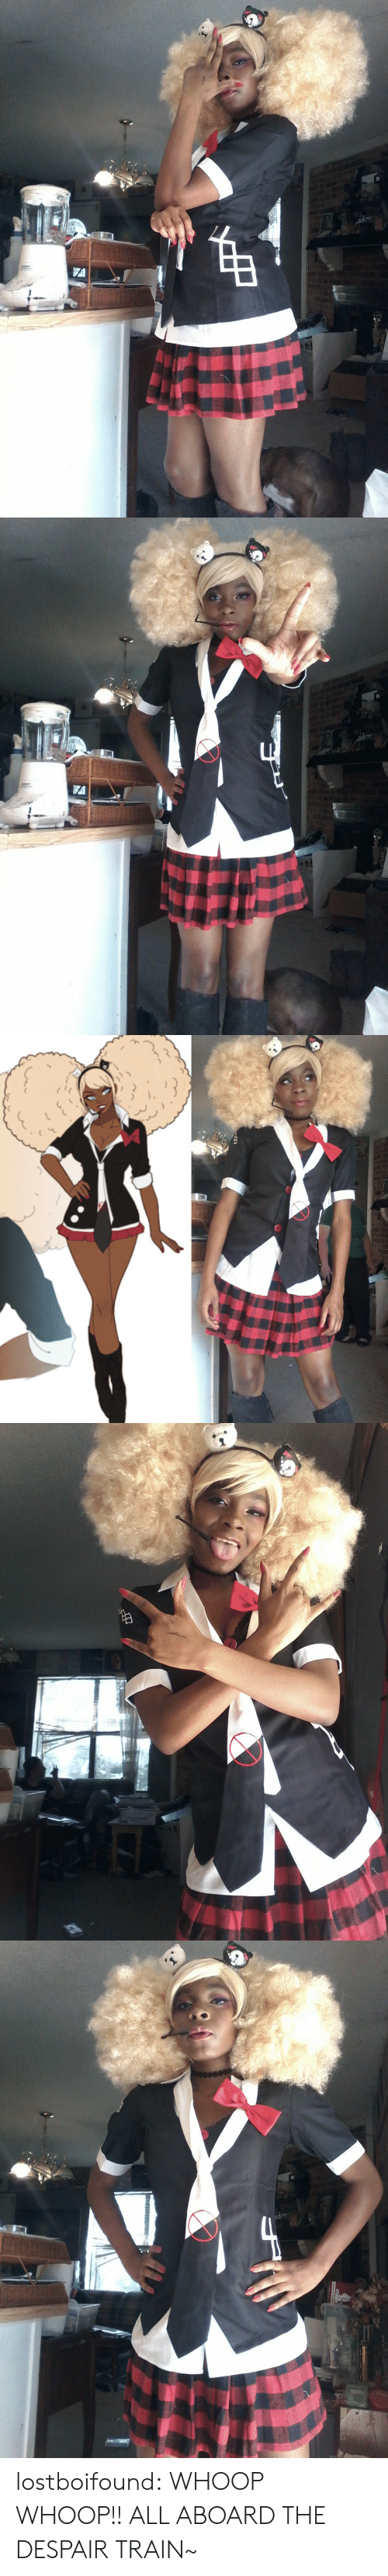 Tumblr, Blog, and Train: lostboifound:  WHOOP WHOOP!! ALL ABOARD THE DESPAIR TRAIN~